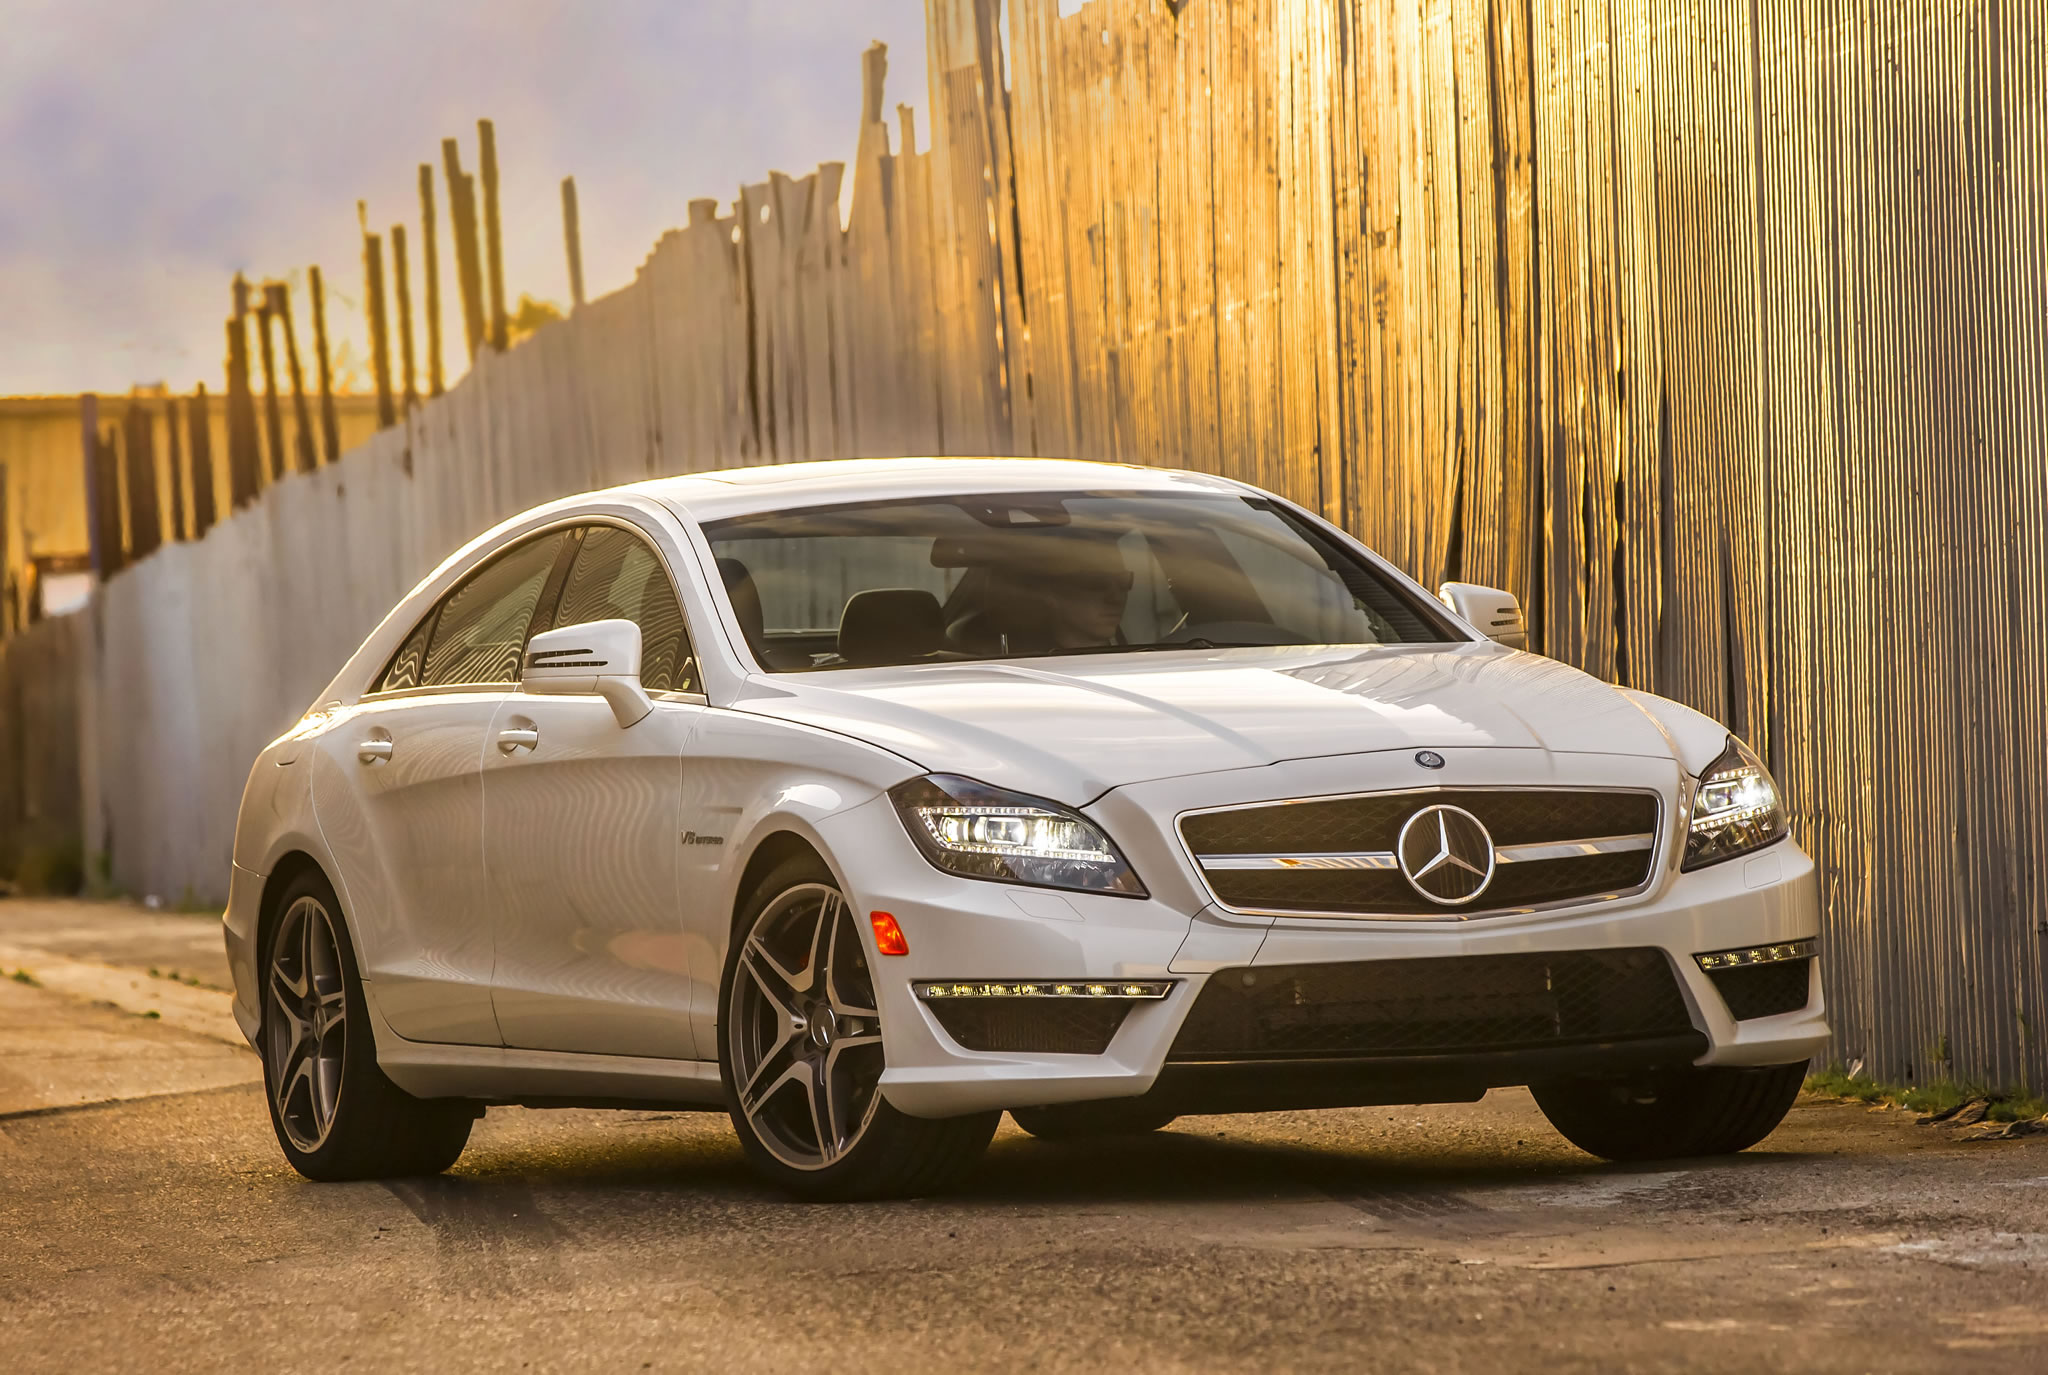 2014 Mercedes-Benz CLS63 AMG S-Model Photos, Specs and Review - RS